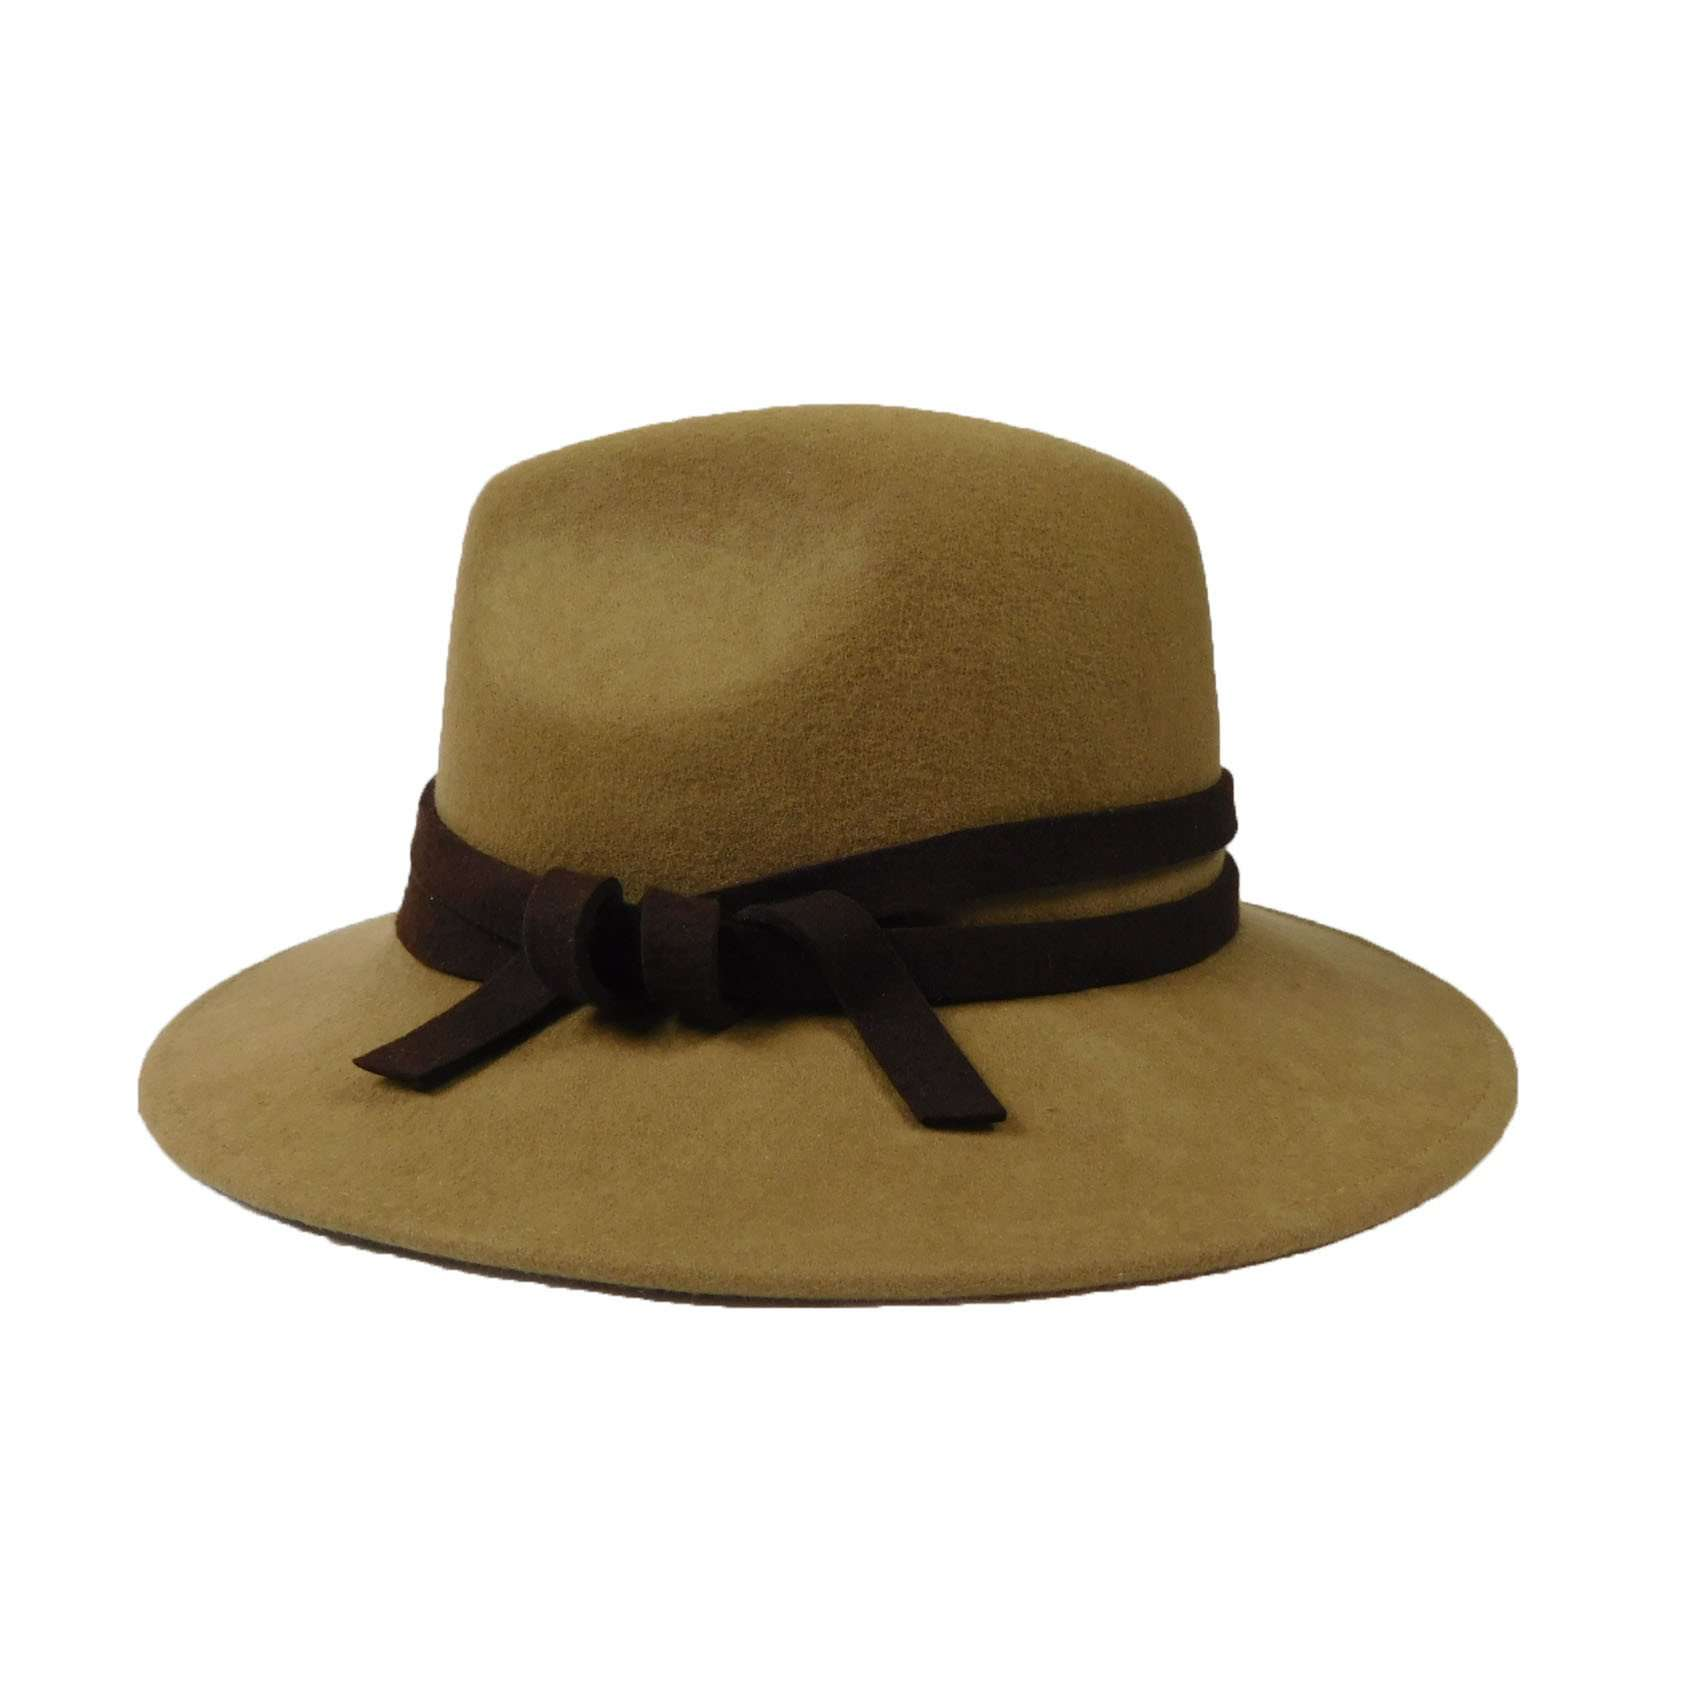 Women's Wool Felt Outback Style Hat - SetarTrading Hats